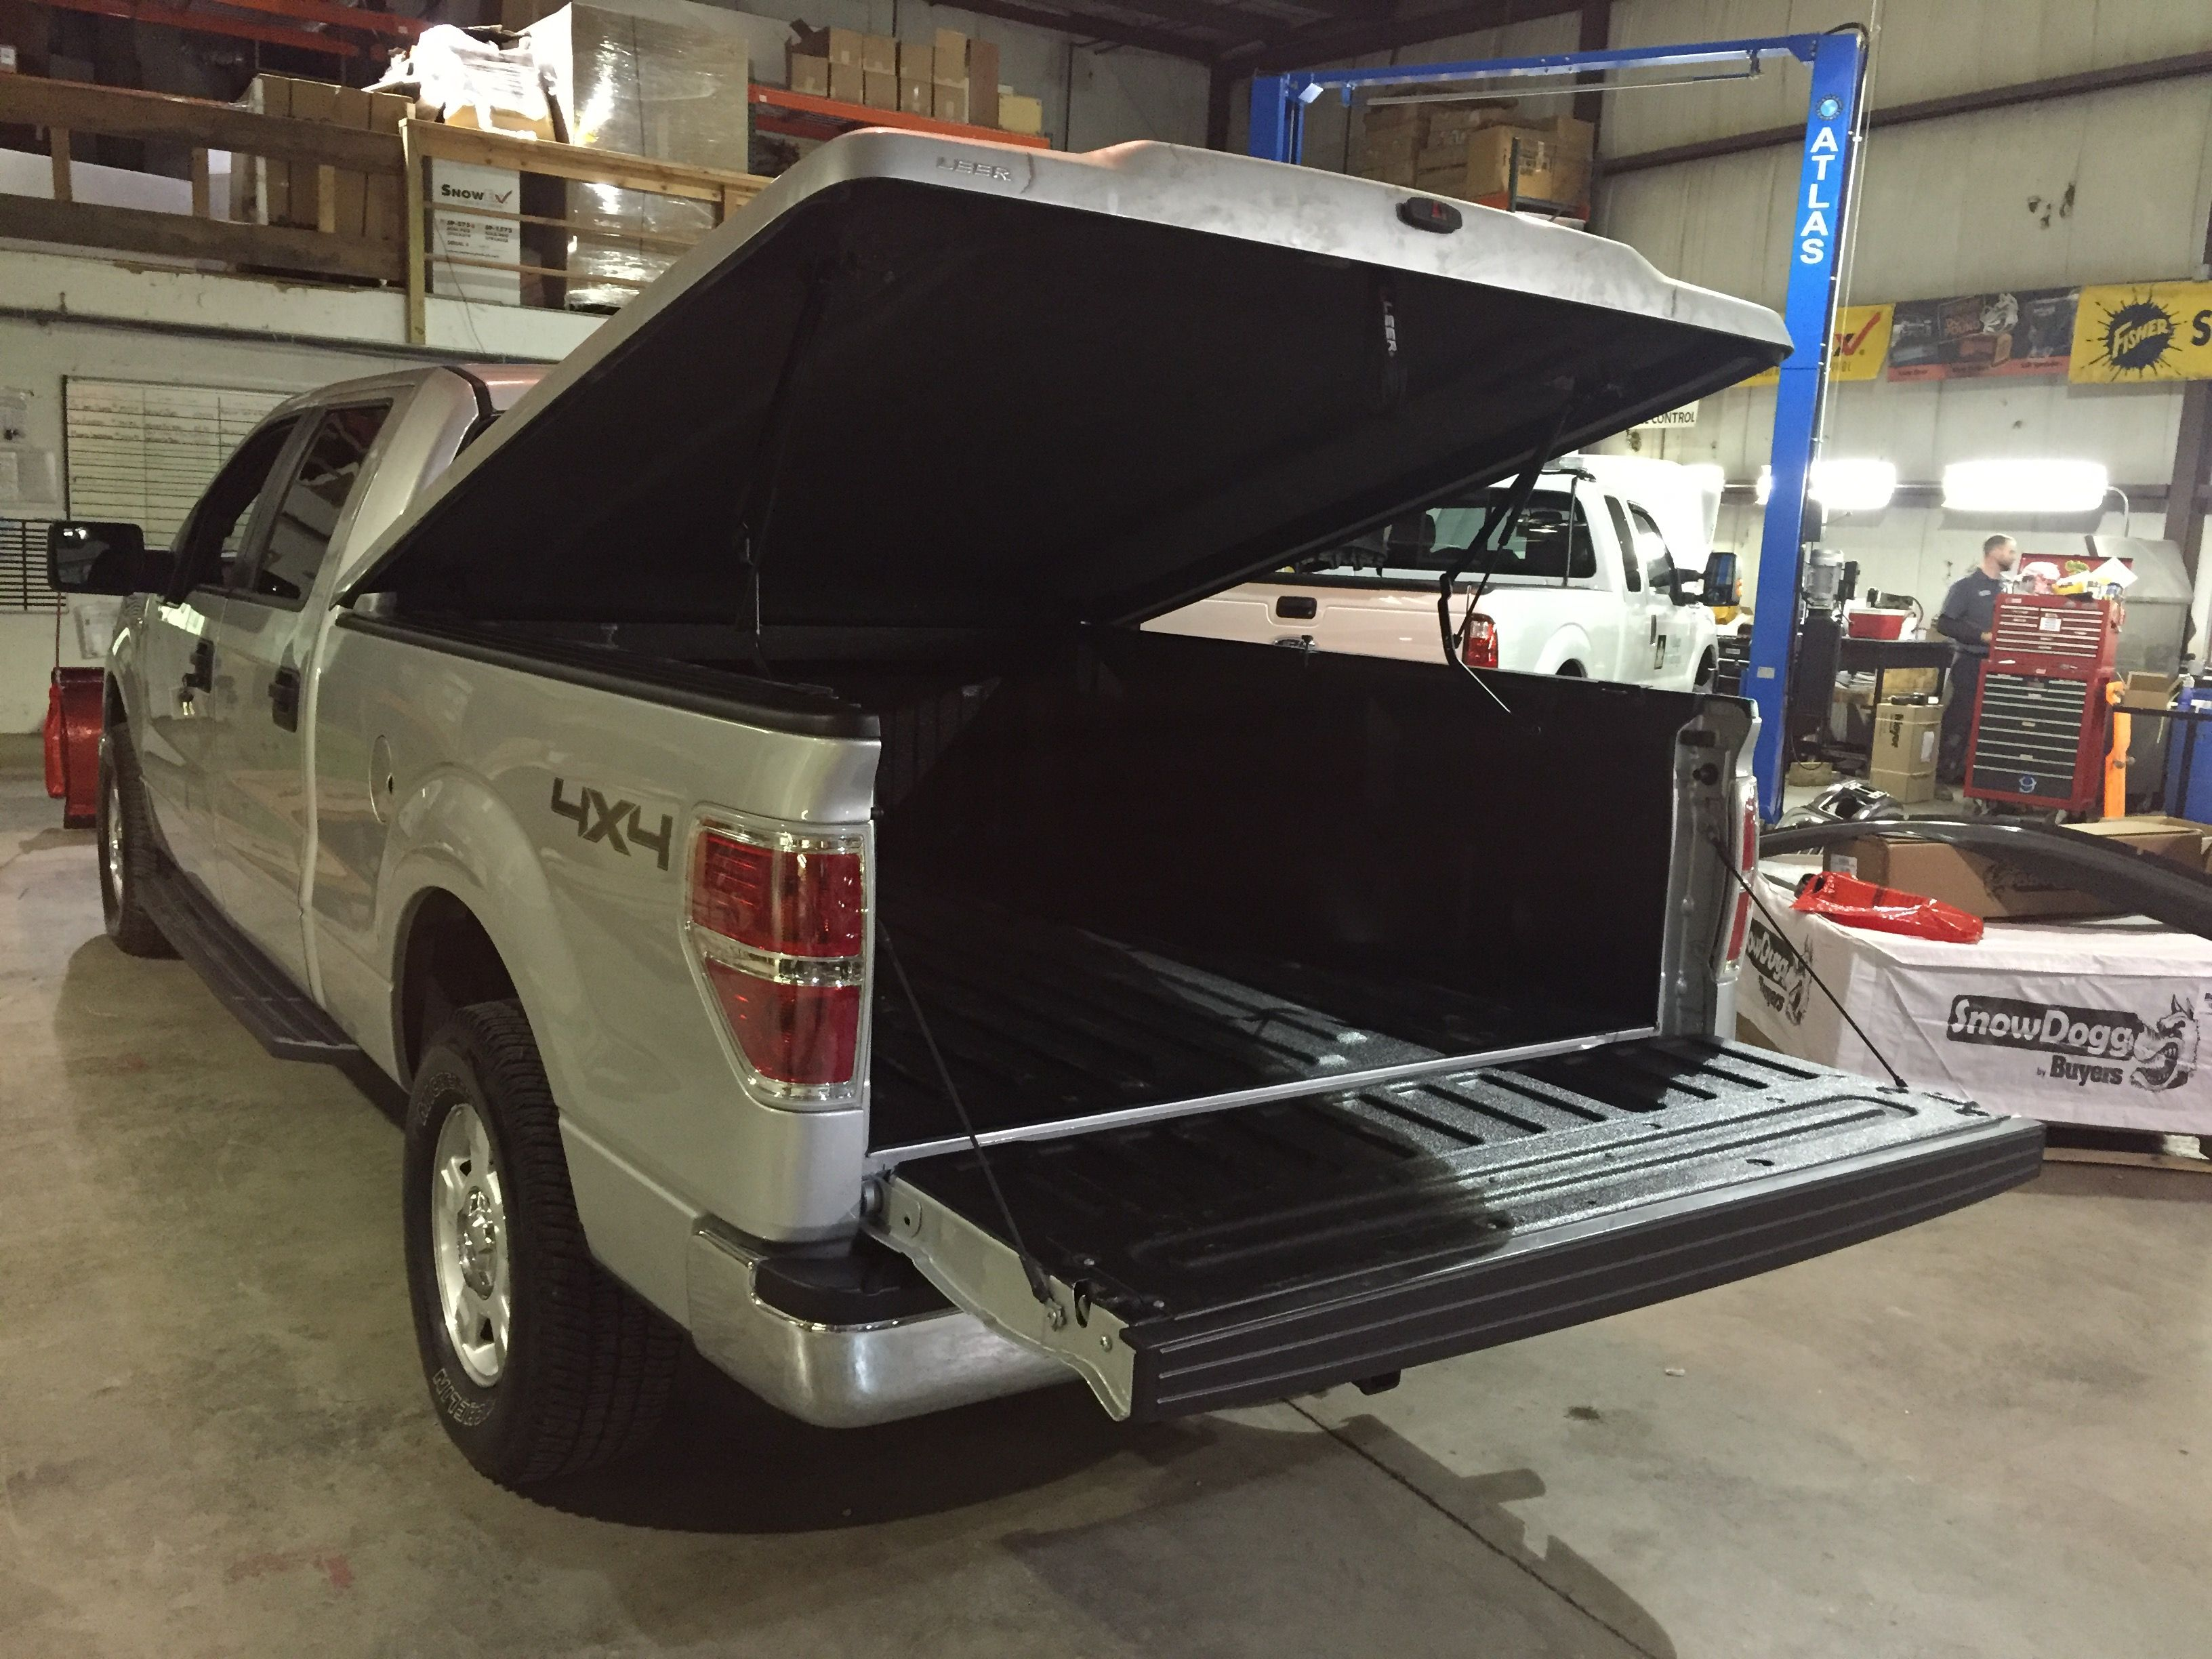 Light Grey 2014 Ford F150 getting installation of Leer 700